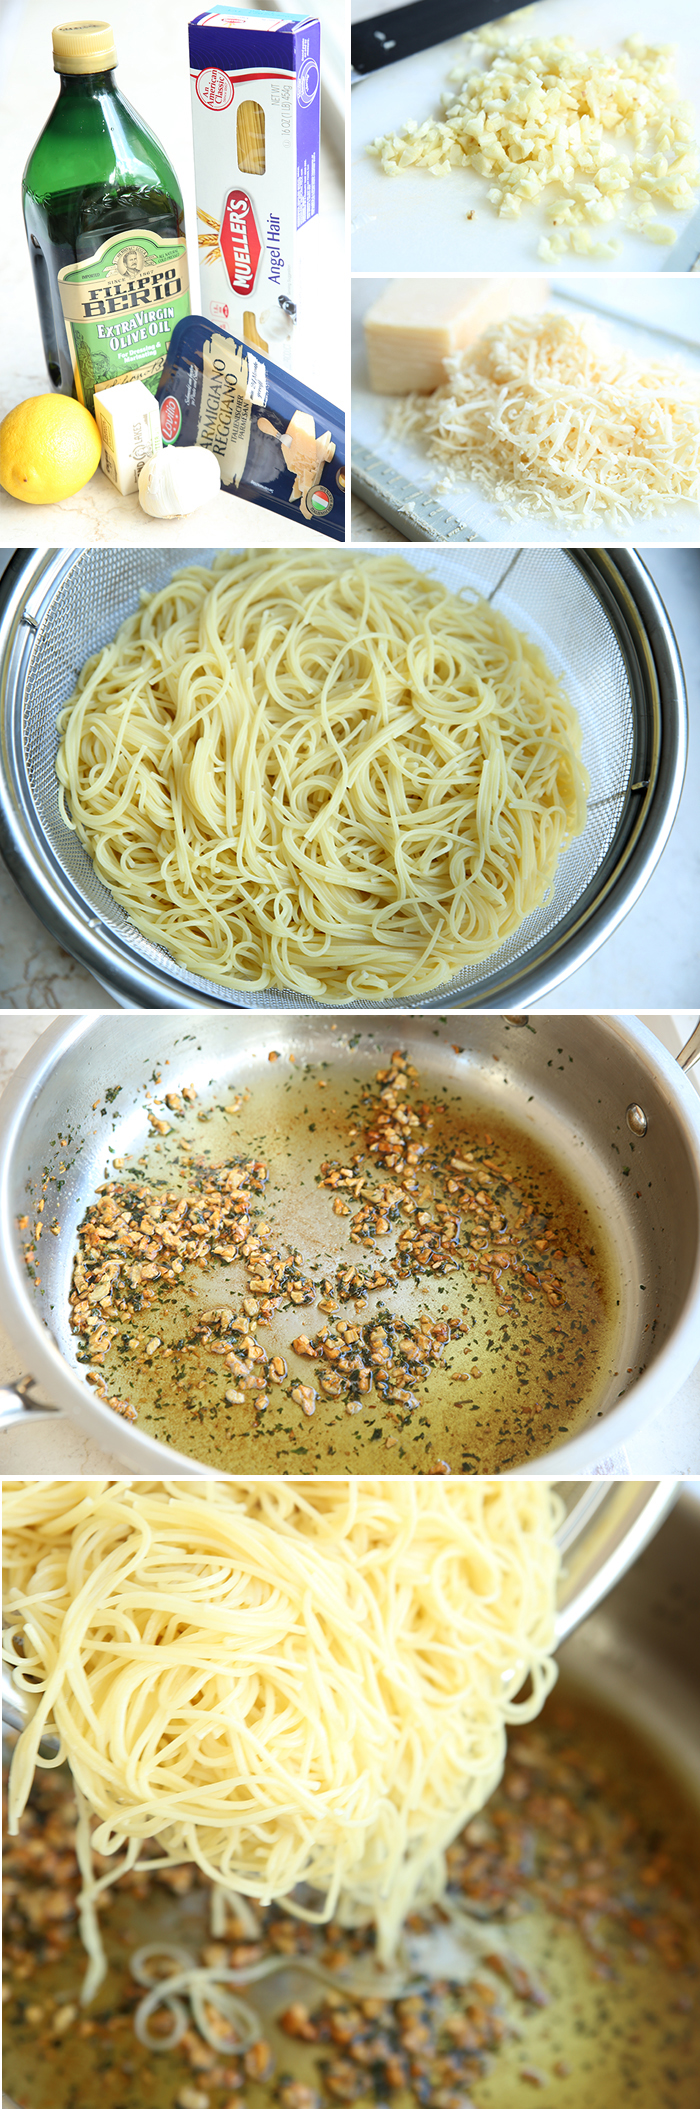 How to pictures for making Angel Hair Pasta with Sauteed Garlic and Parmesan